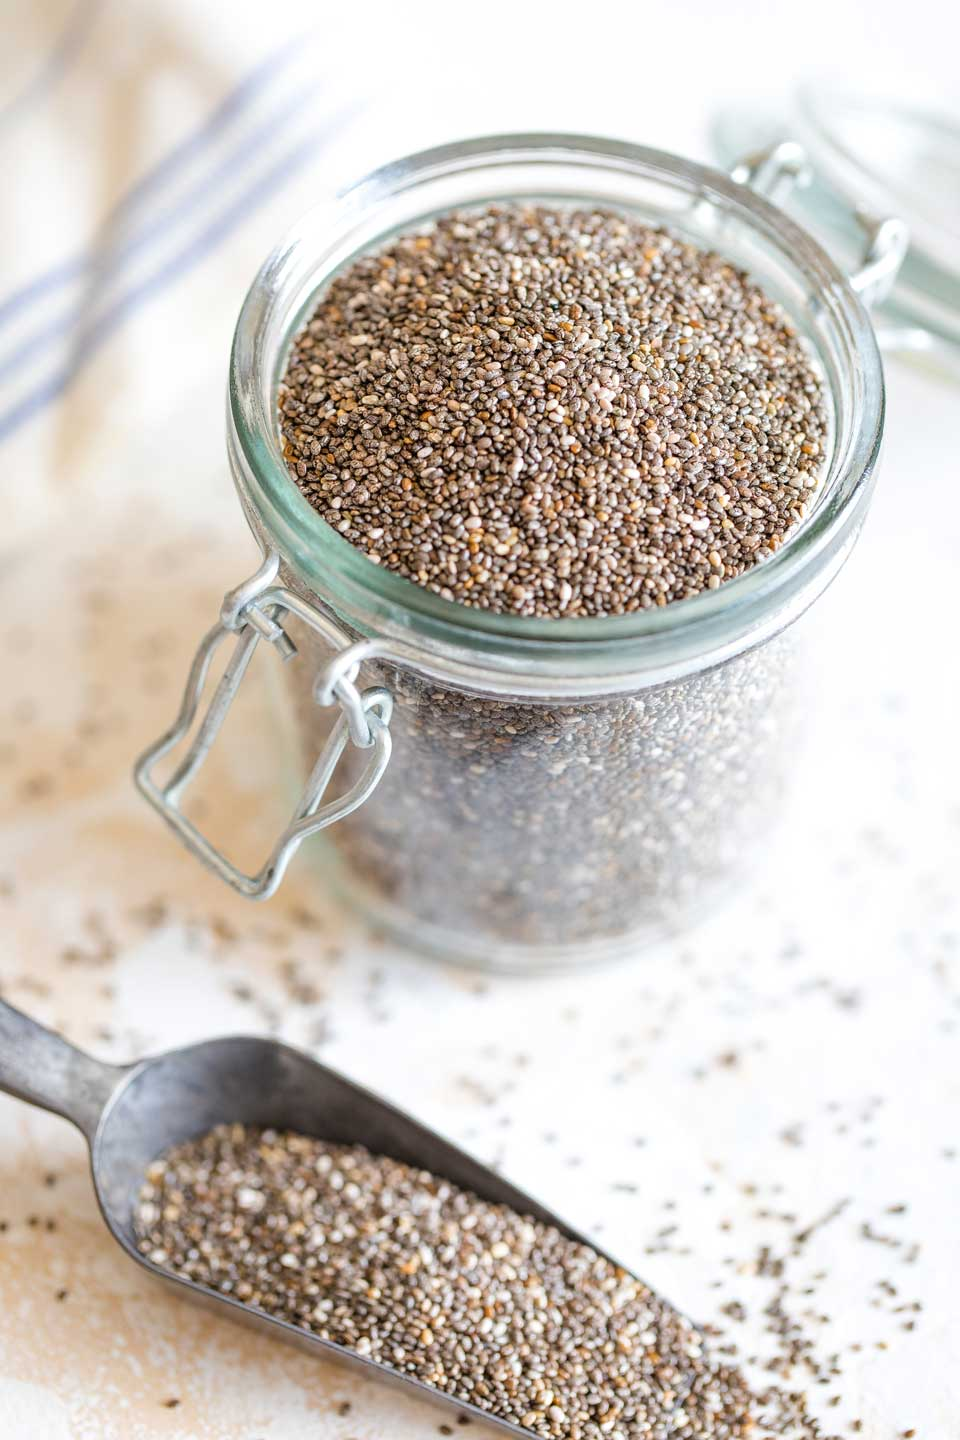 Glass jar of chia seeds with a metal scoop full of seeds laying in front.